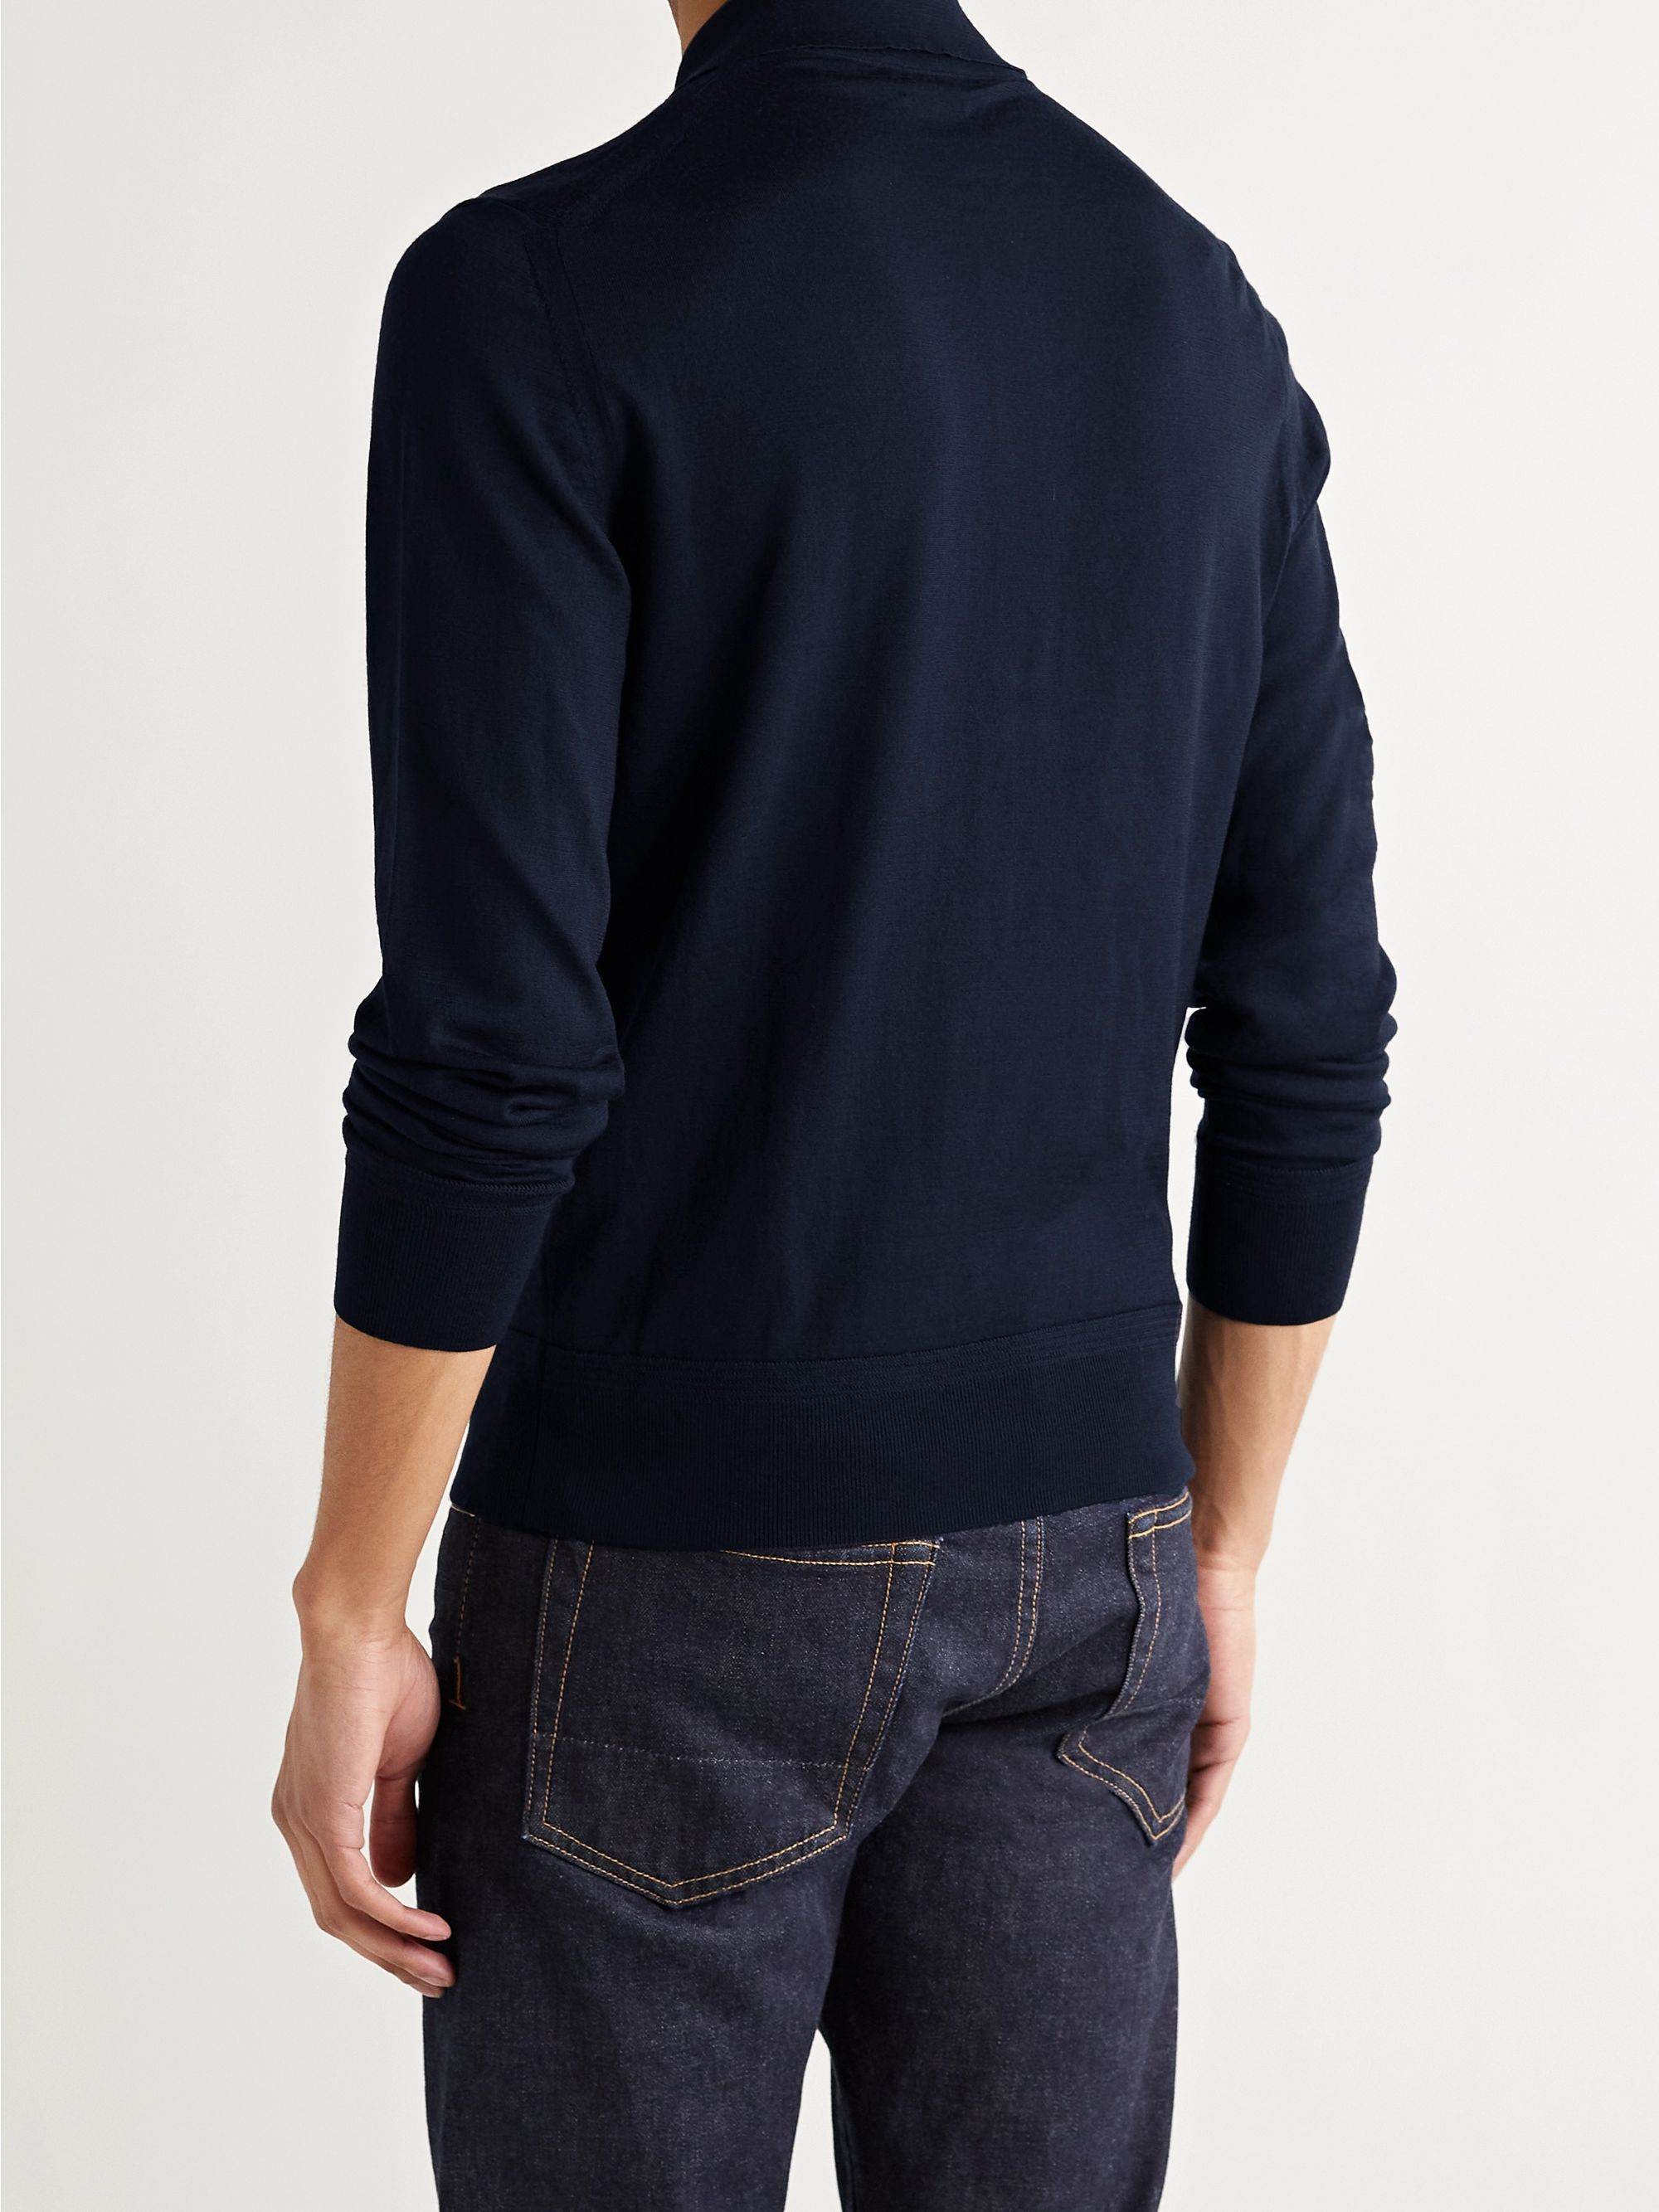 TOM FORD Slim-Fit Mélange Wool Polo Shirt